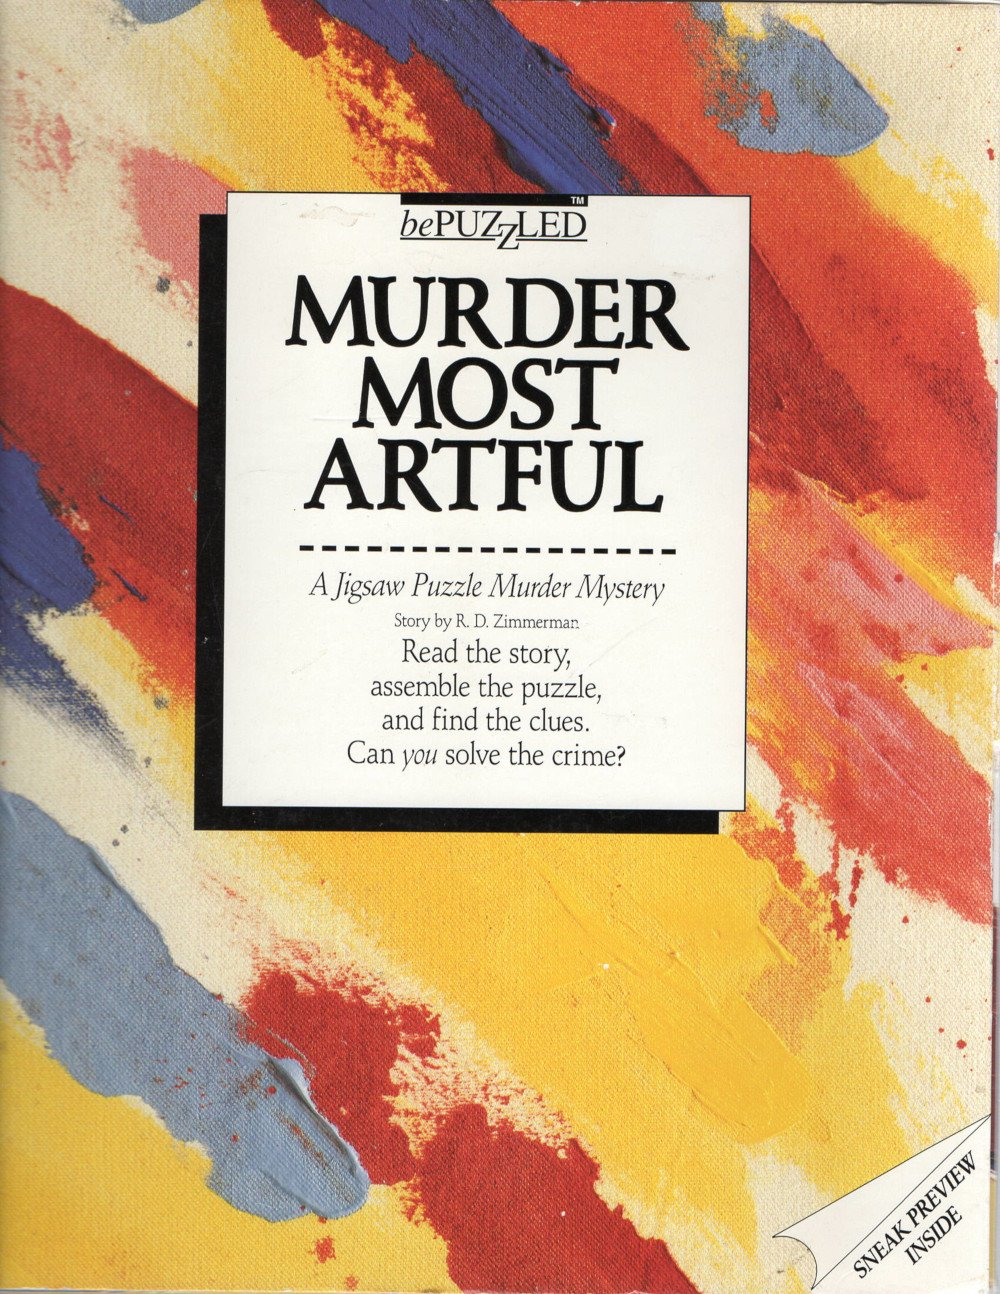 Rental - BePuzzled 500: Murder Most Artful - Conundrum House